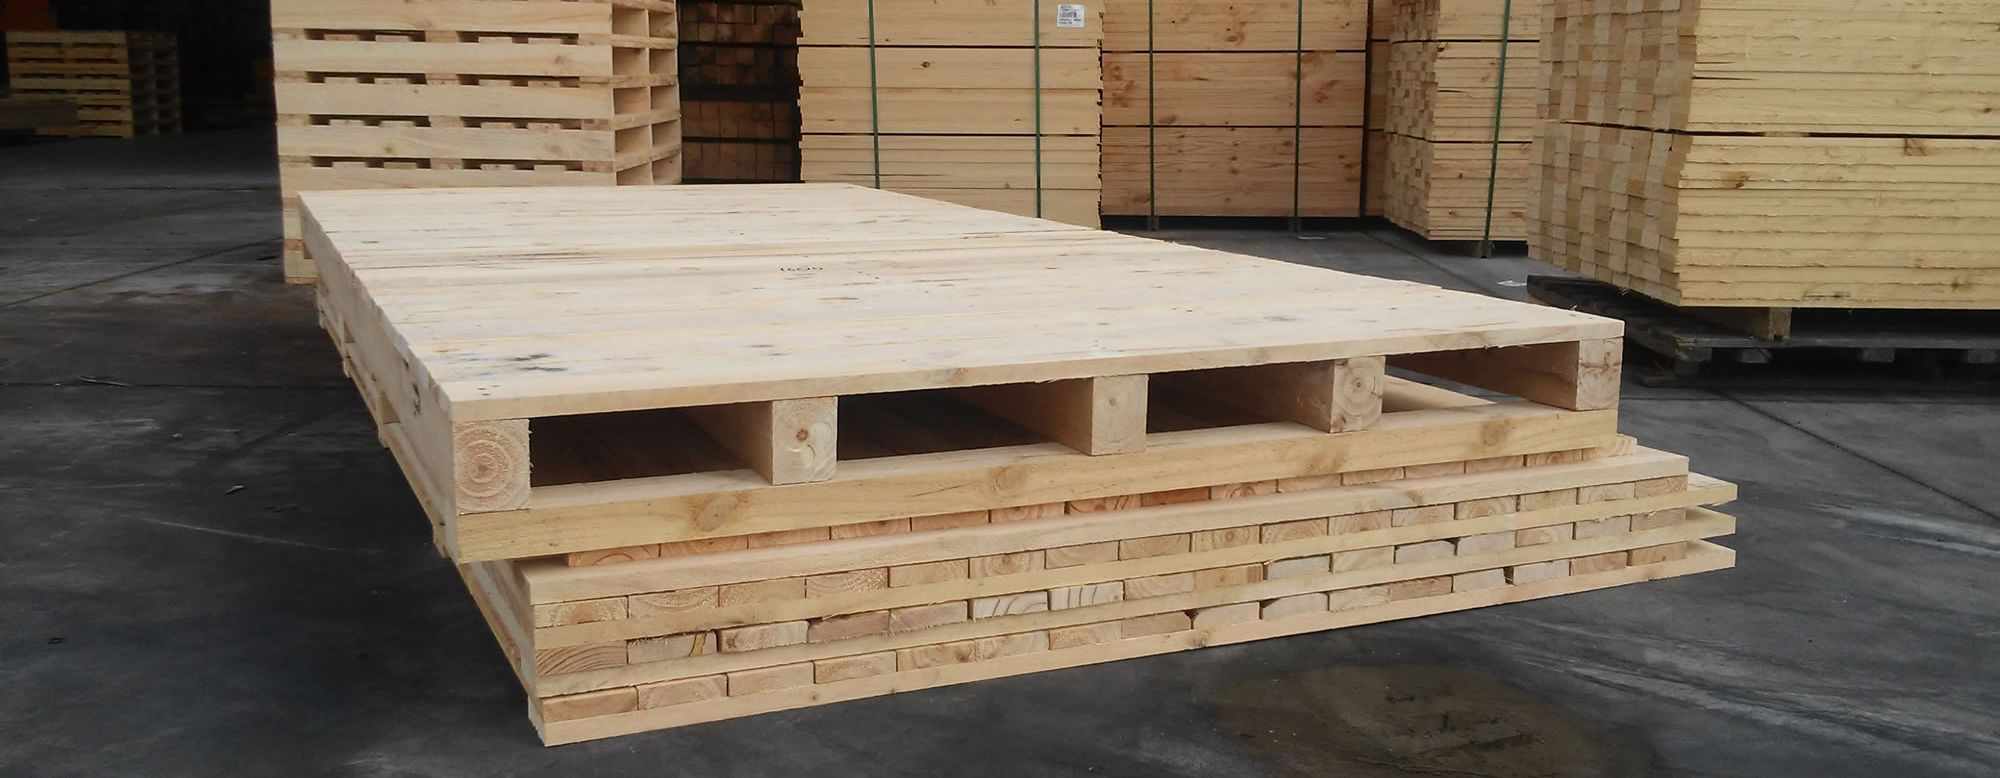 Export crate - flat packed